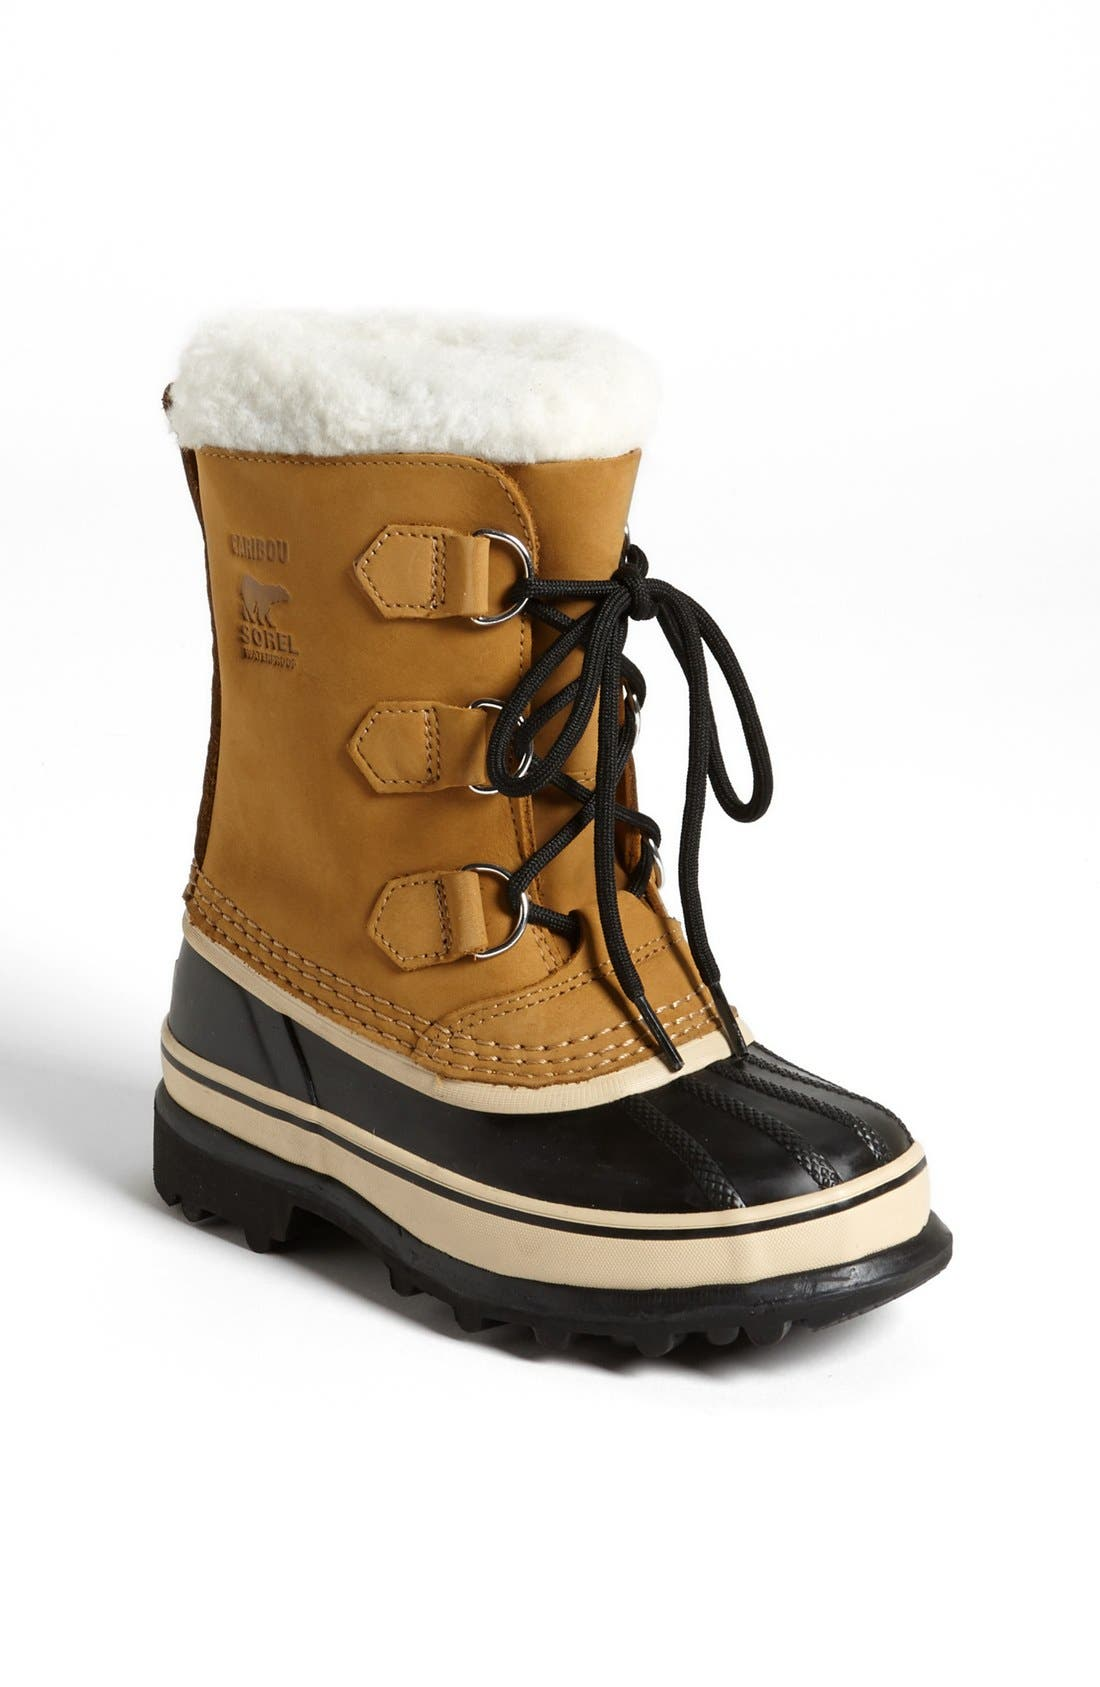 Alternate Image 1 Selected - SOREL Caribou Waterproof Boot (Little Kid & Big Kid)